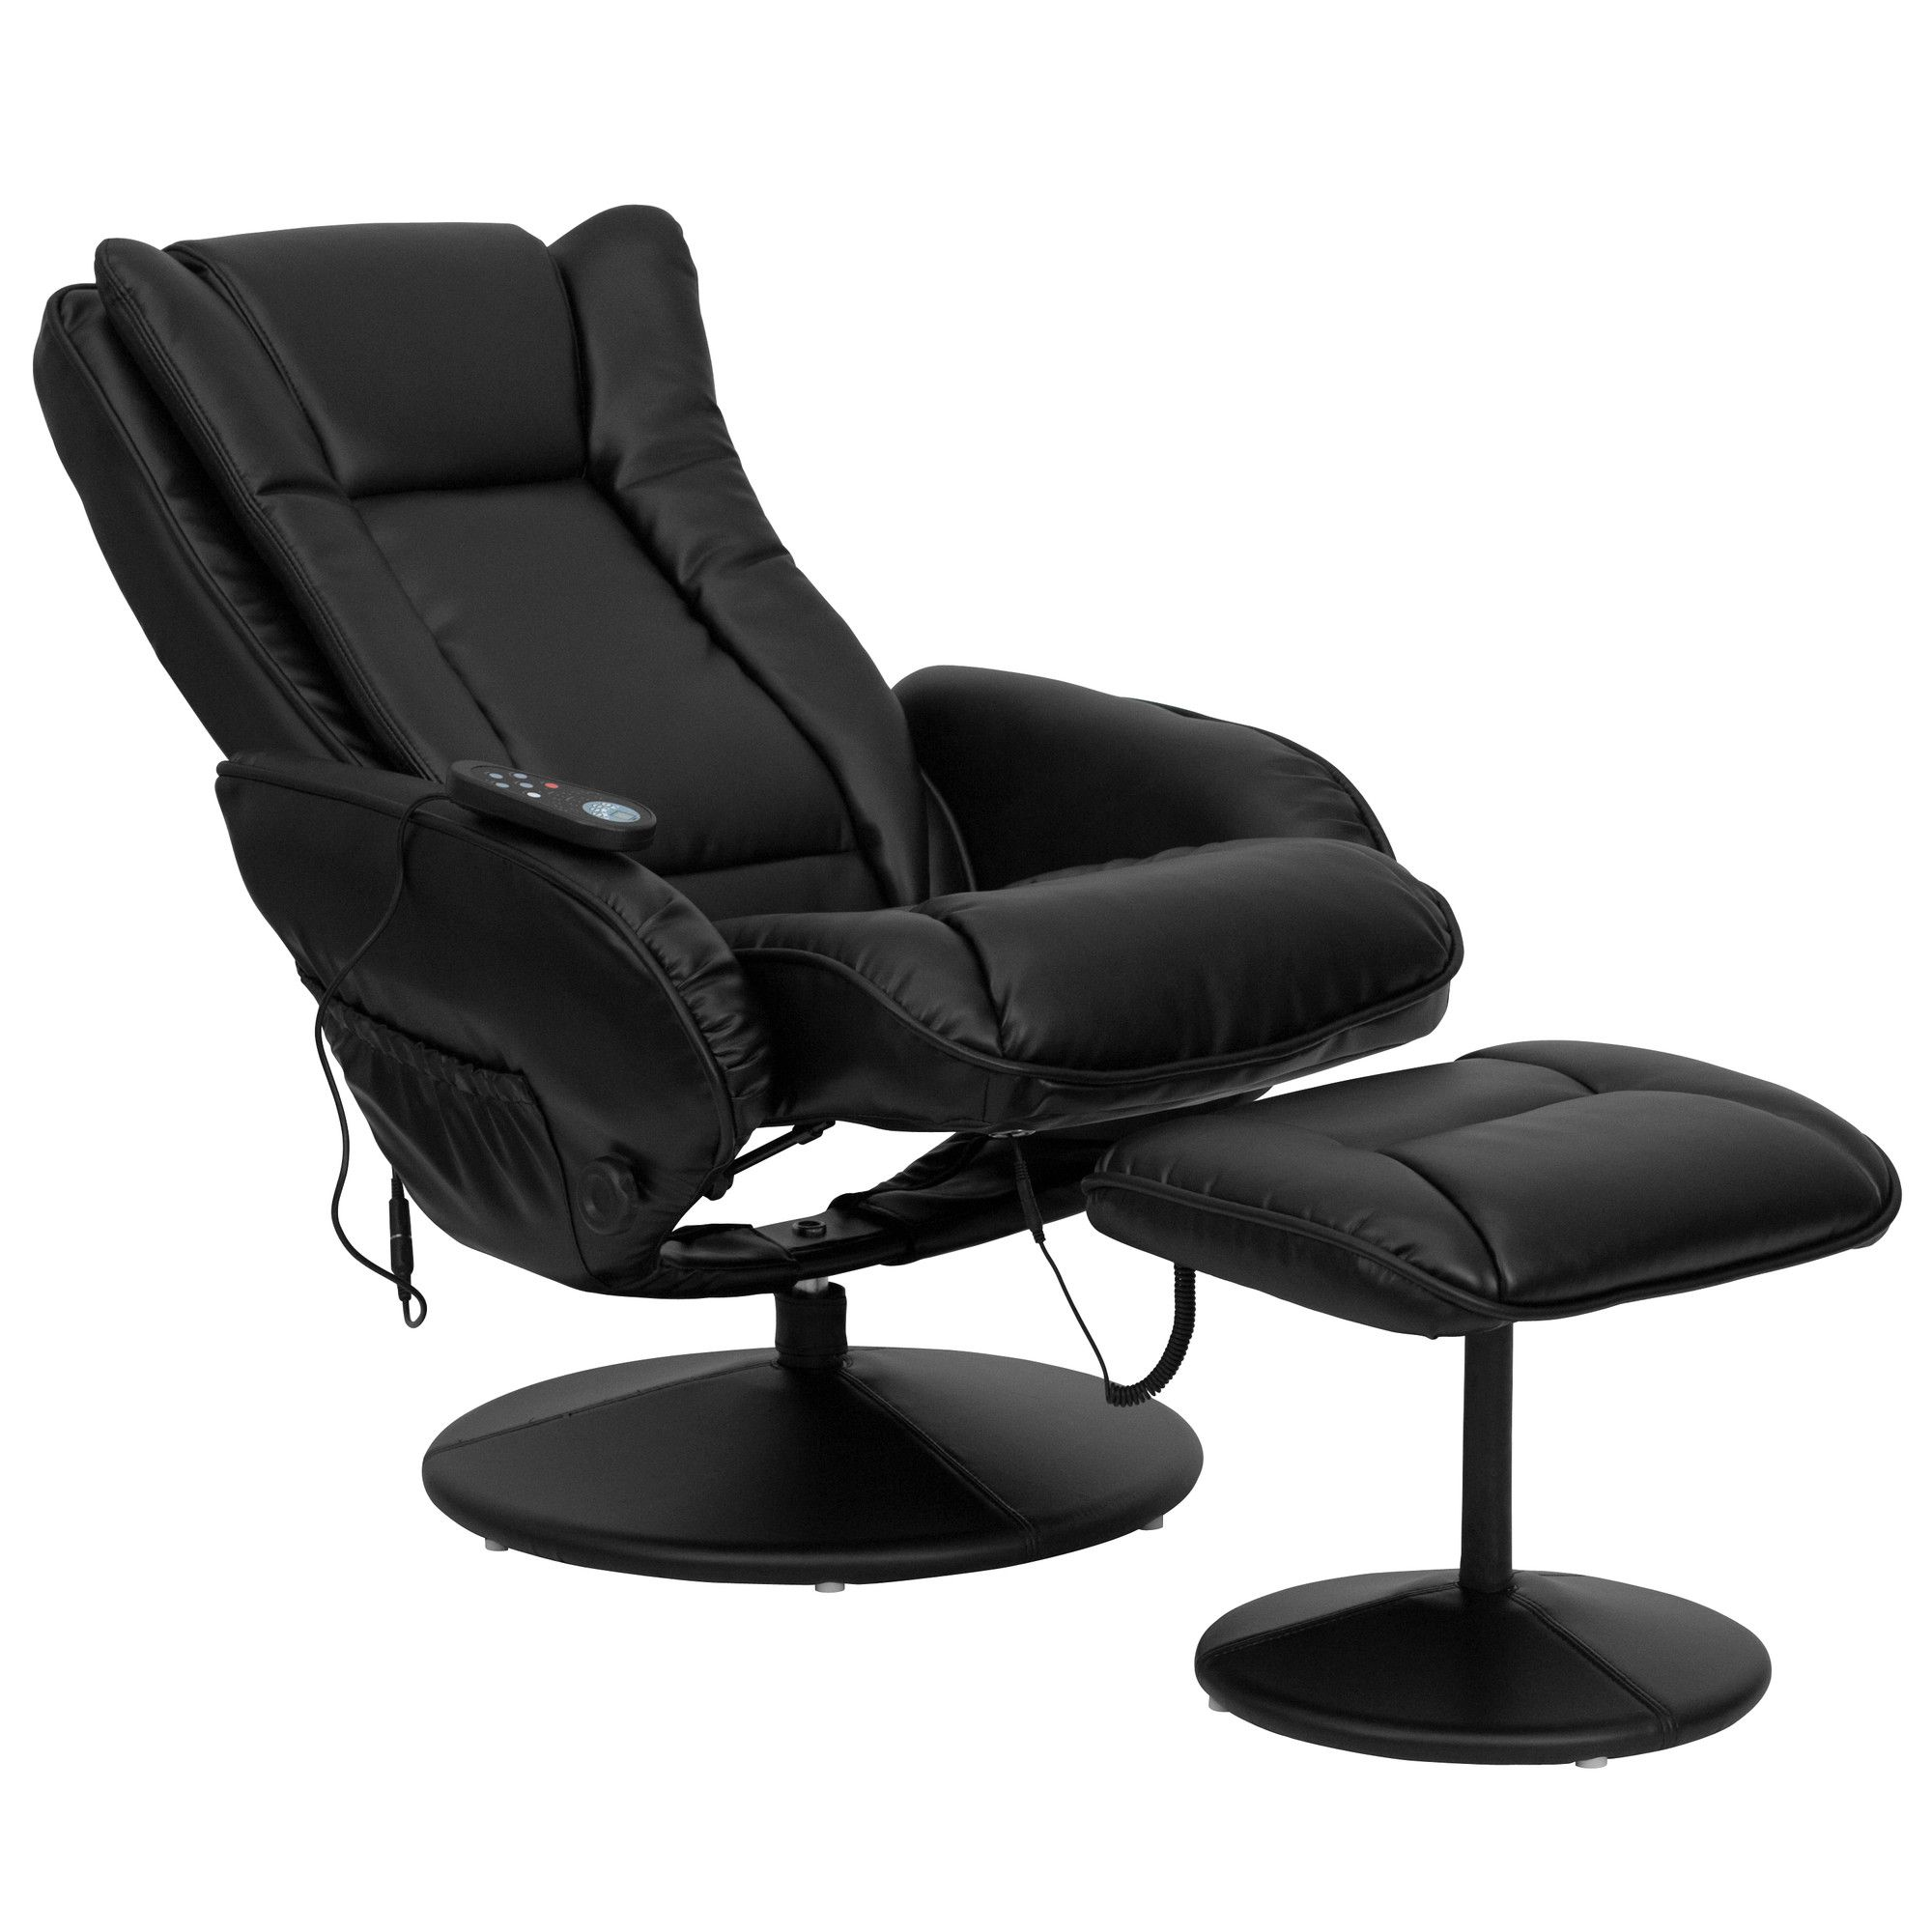 FlashFurniture Leather Heated Reclining Massage Chair and